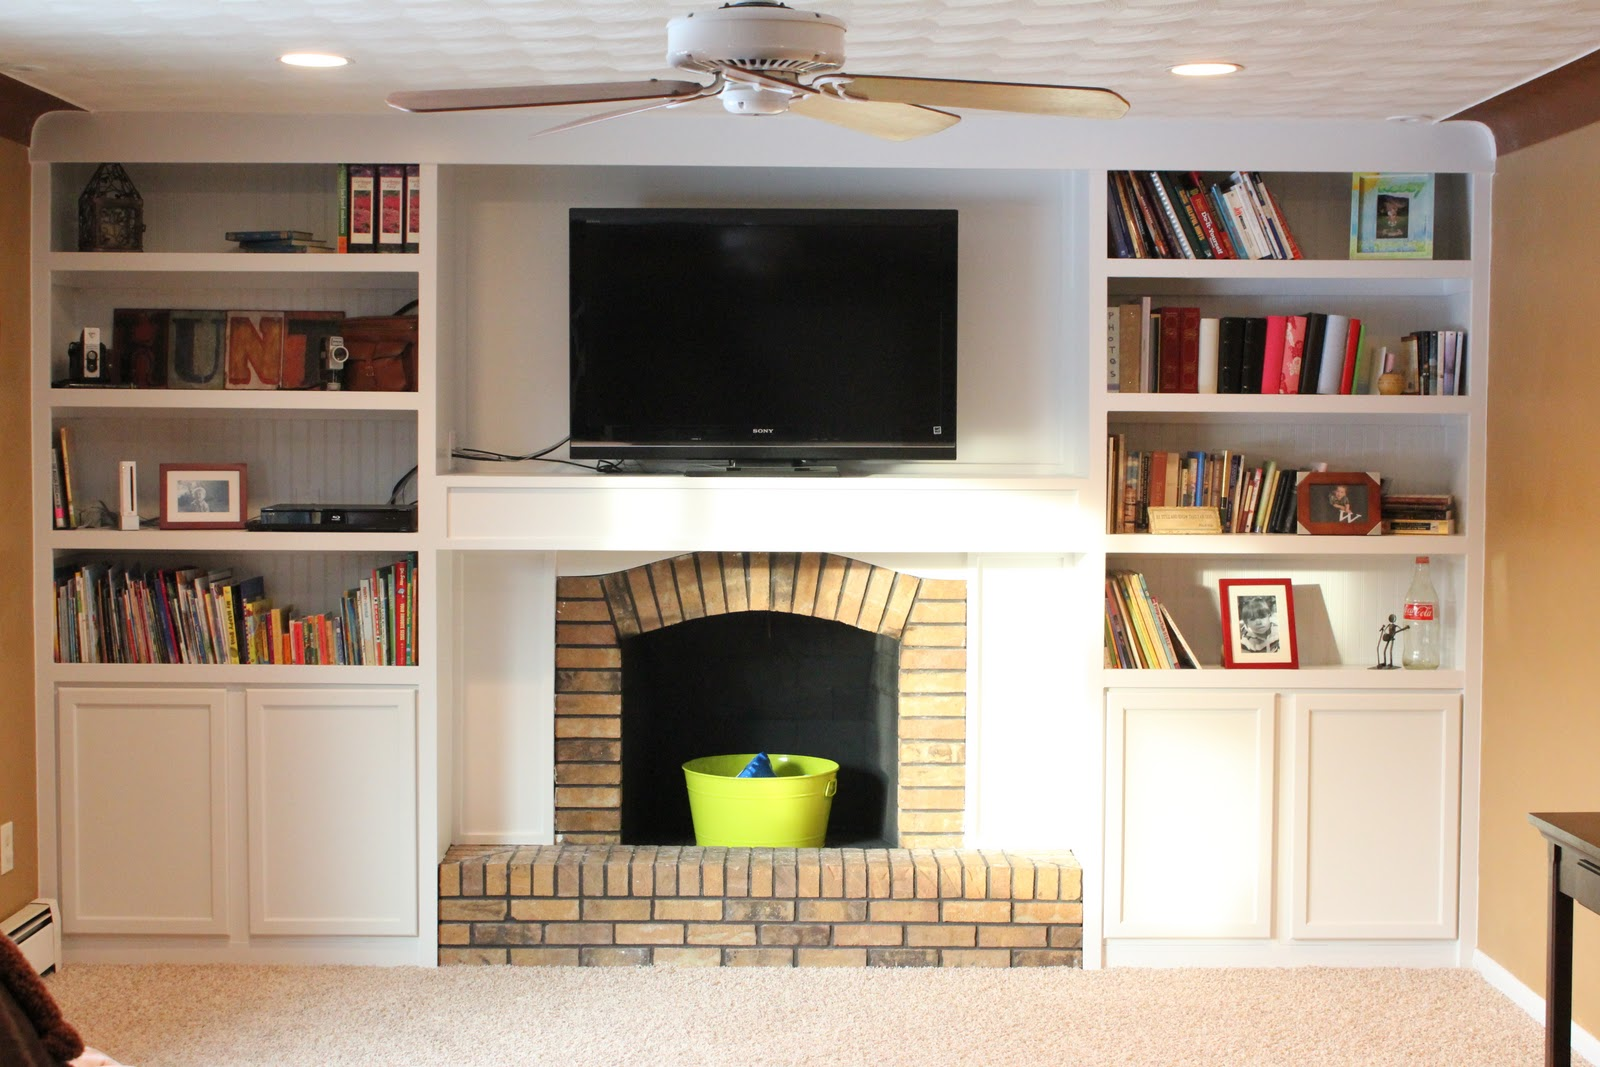 Hilarious Floating Shelves Around A Fireplace Fireplace Built Ins Cabinets Built Doors Fireplace Built Ins houzz-02 Fireplace Built Ins